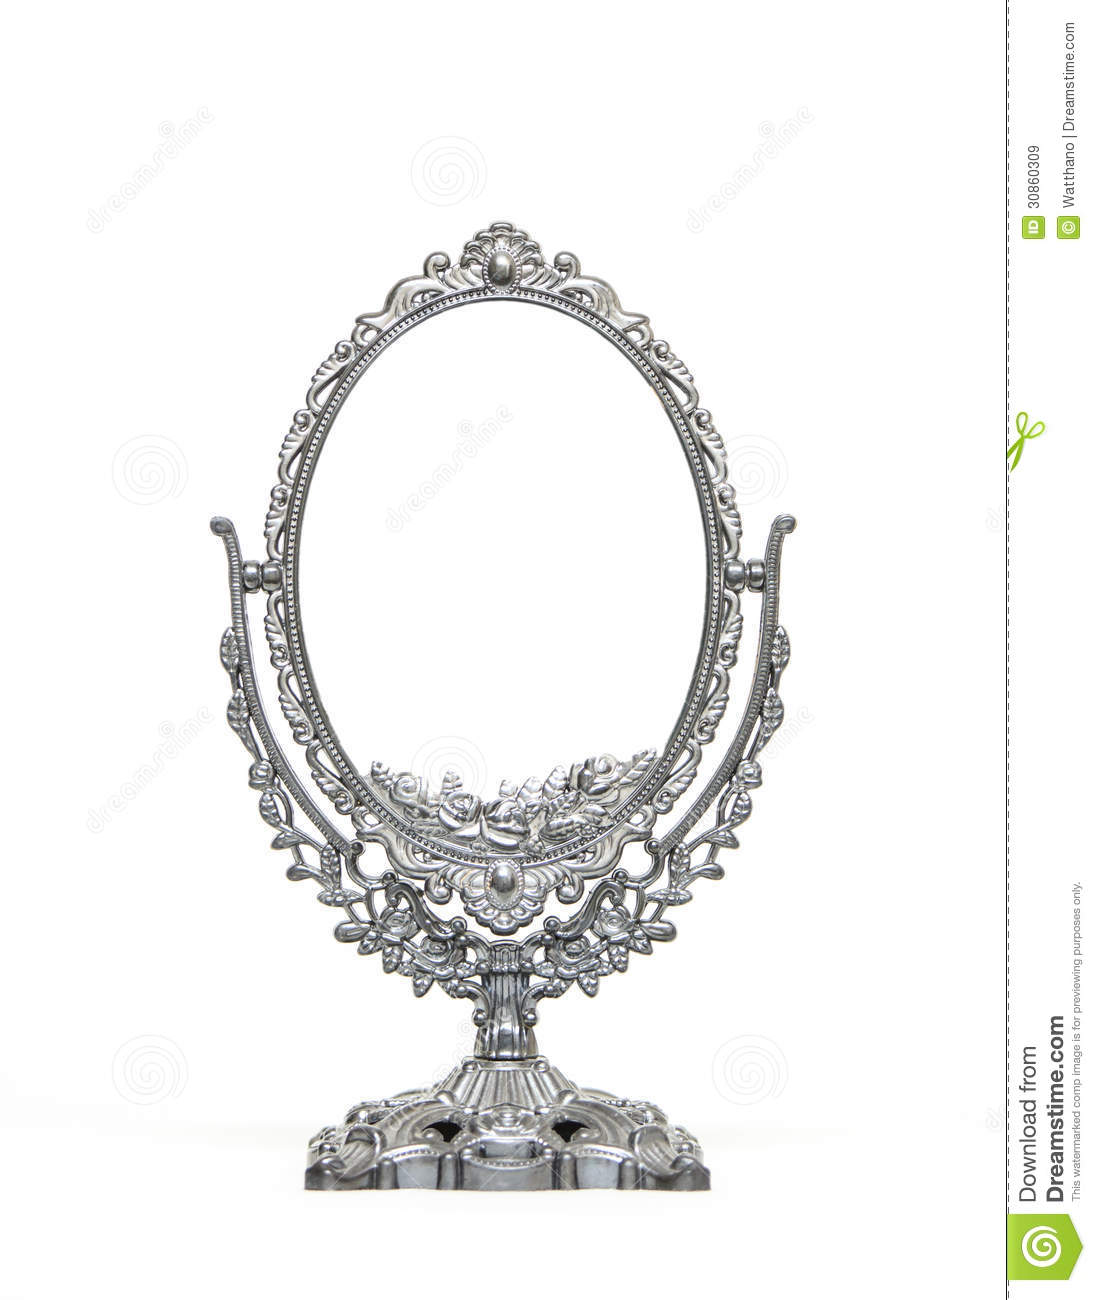 Silver Vintage Mirror Isolated On White Background Royalty Free Stock ...: www.dreamstime.com/royalty-free-stock-images-silver-vintage-mirror...